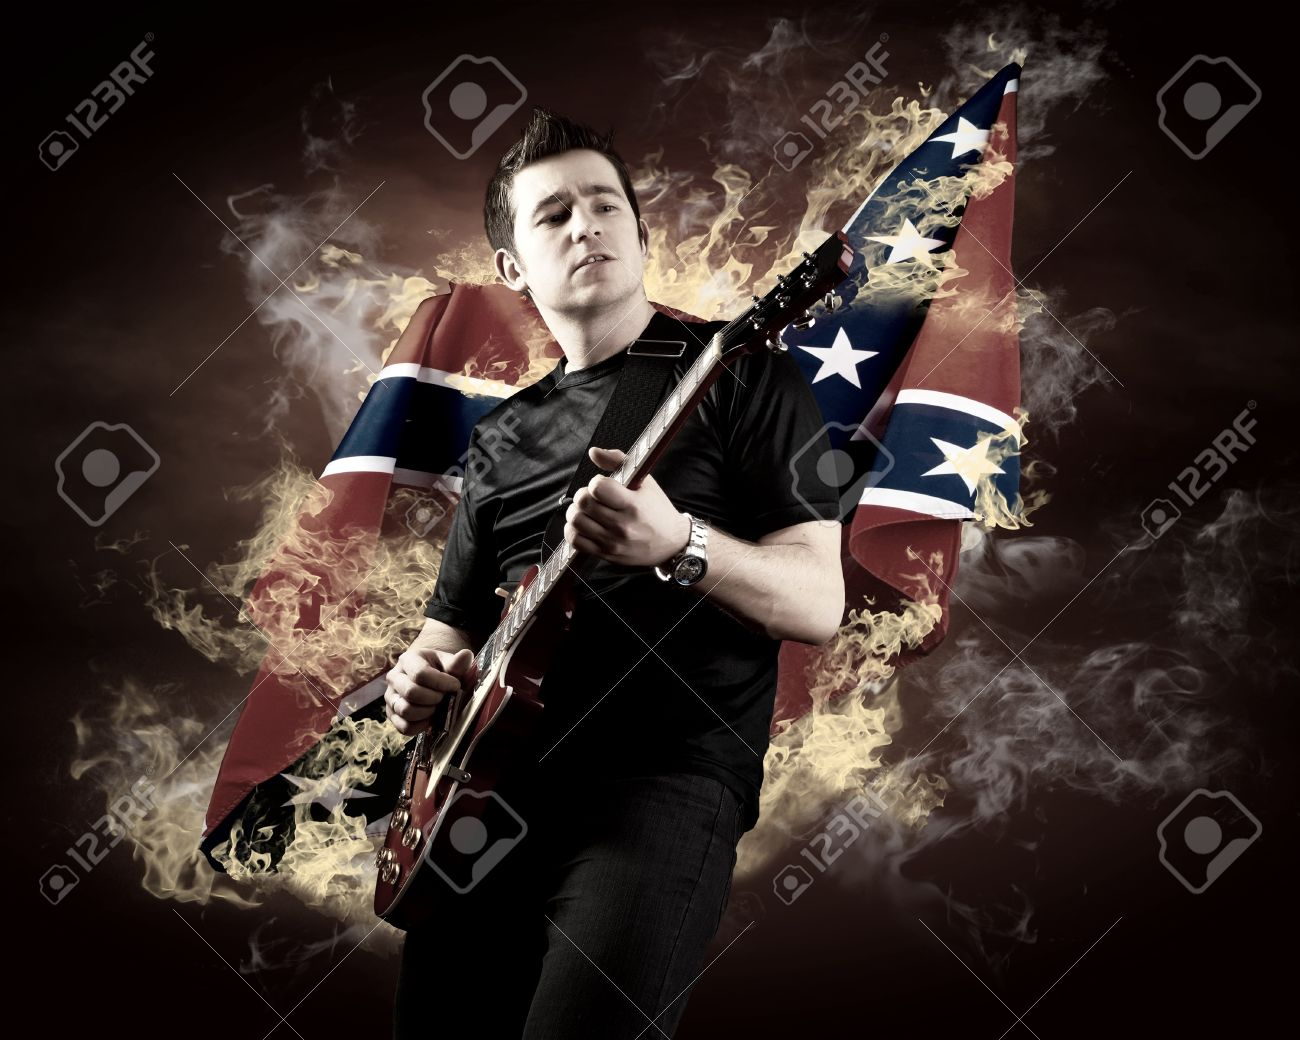 Rock guitarist play on the electric guitar around fire flames Stock Photo - 10560619